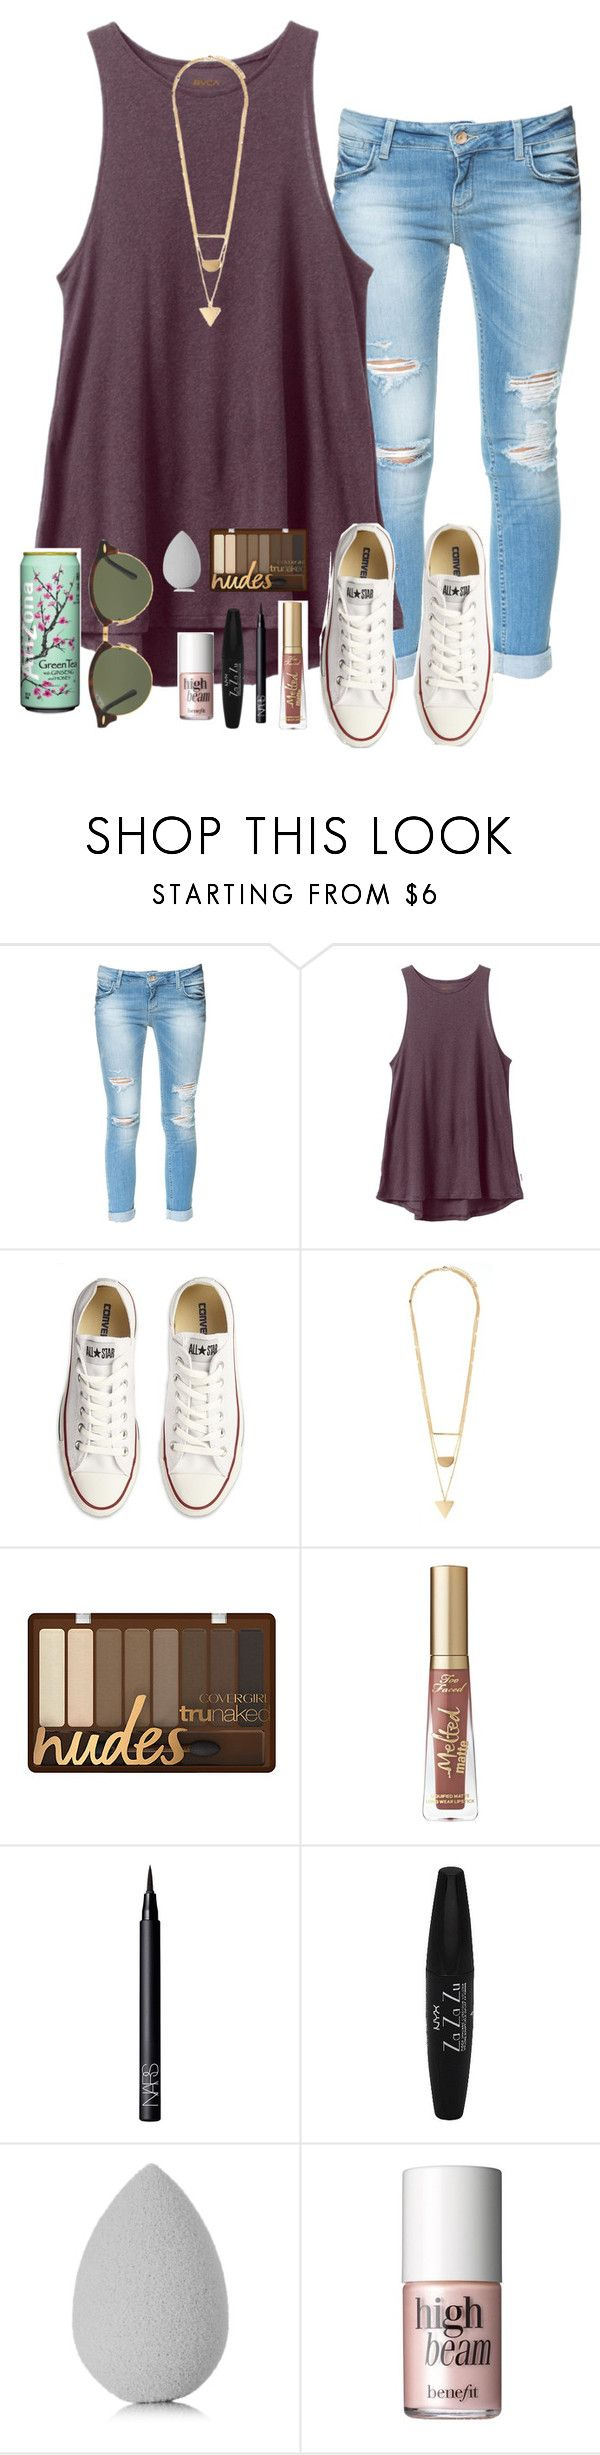 """getting my haircut tomorrow!!"" by torideckerrr ❤ liked on Polyvore featuring Zara, RVCA, Converse, Forever 21, Too Faced Cosmetics, NARS Cosmetics, NYX, beautyblender, Benefit and Ray-Ban"